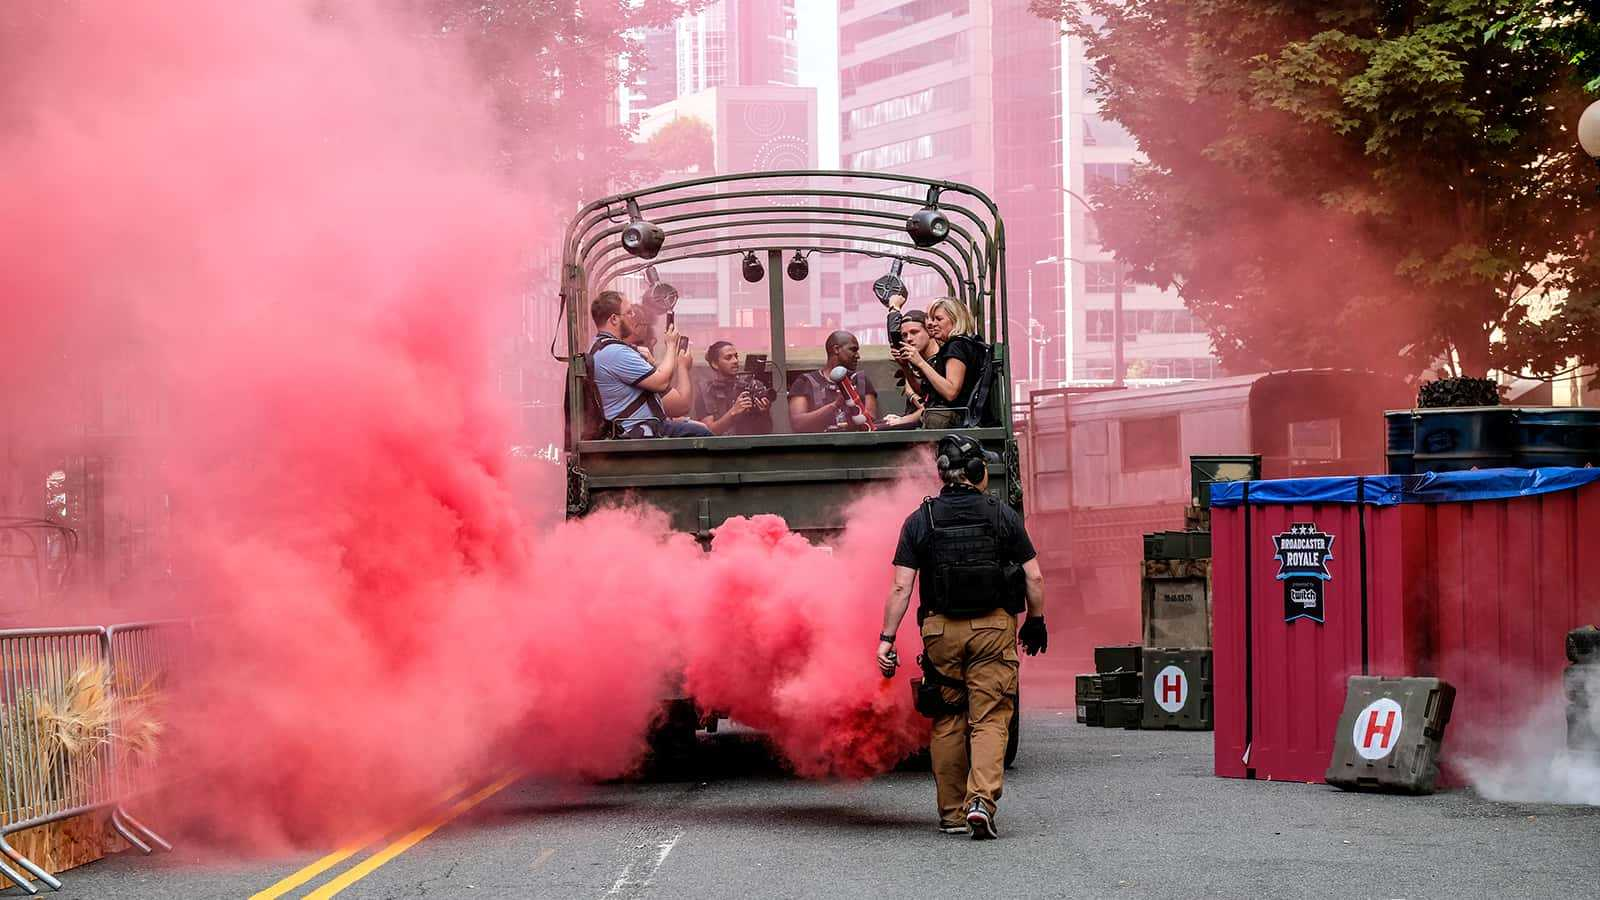 The PUBG 6x6 truck transports attendees to Twitch Broadcaster Royale.